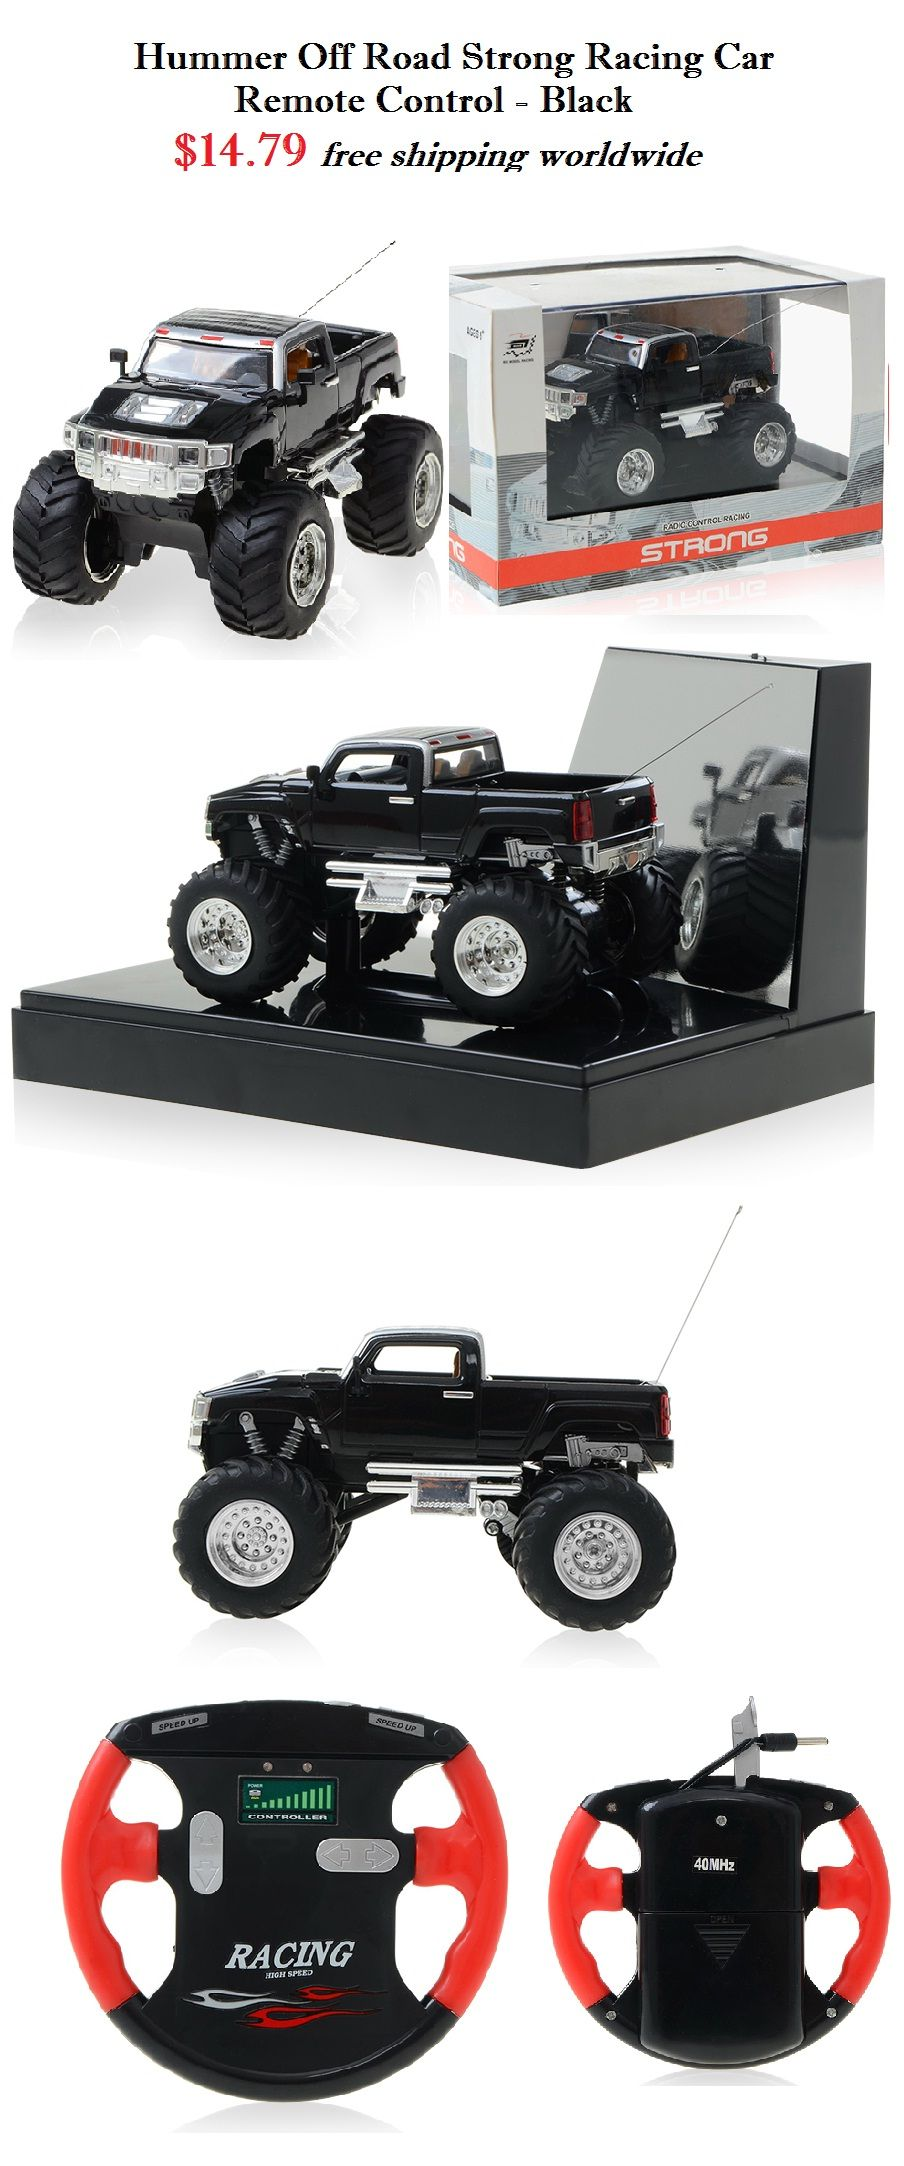 Strong Racing Car Remote Control Black Accessories Remote Control Racing Hummer